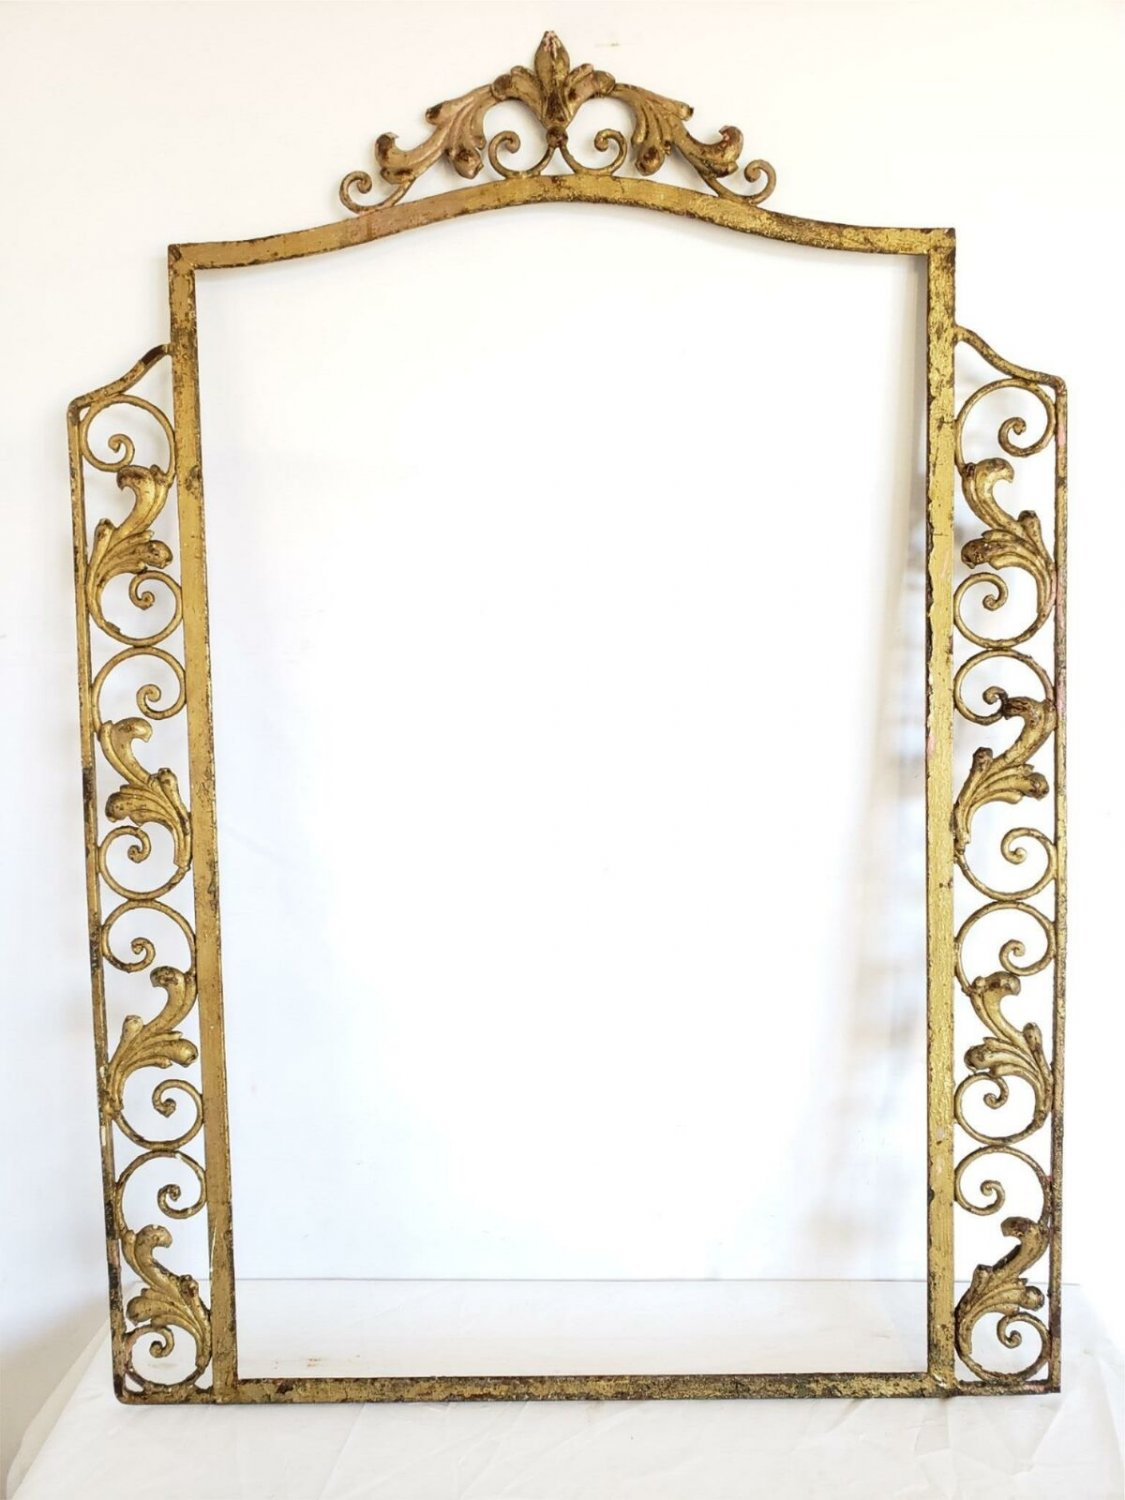 Beautiful Turn Of The Century Antique Scrolled Wrought Iron Large Mirror Frame